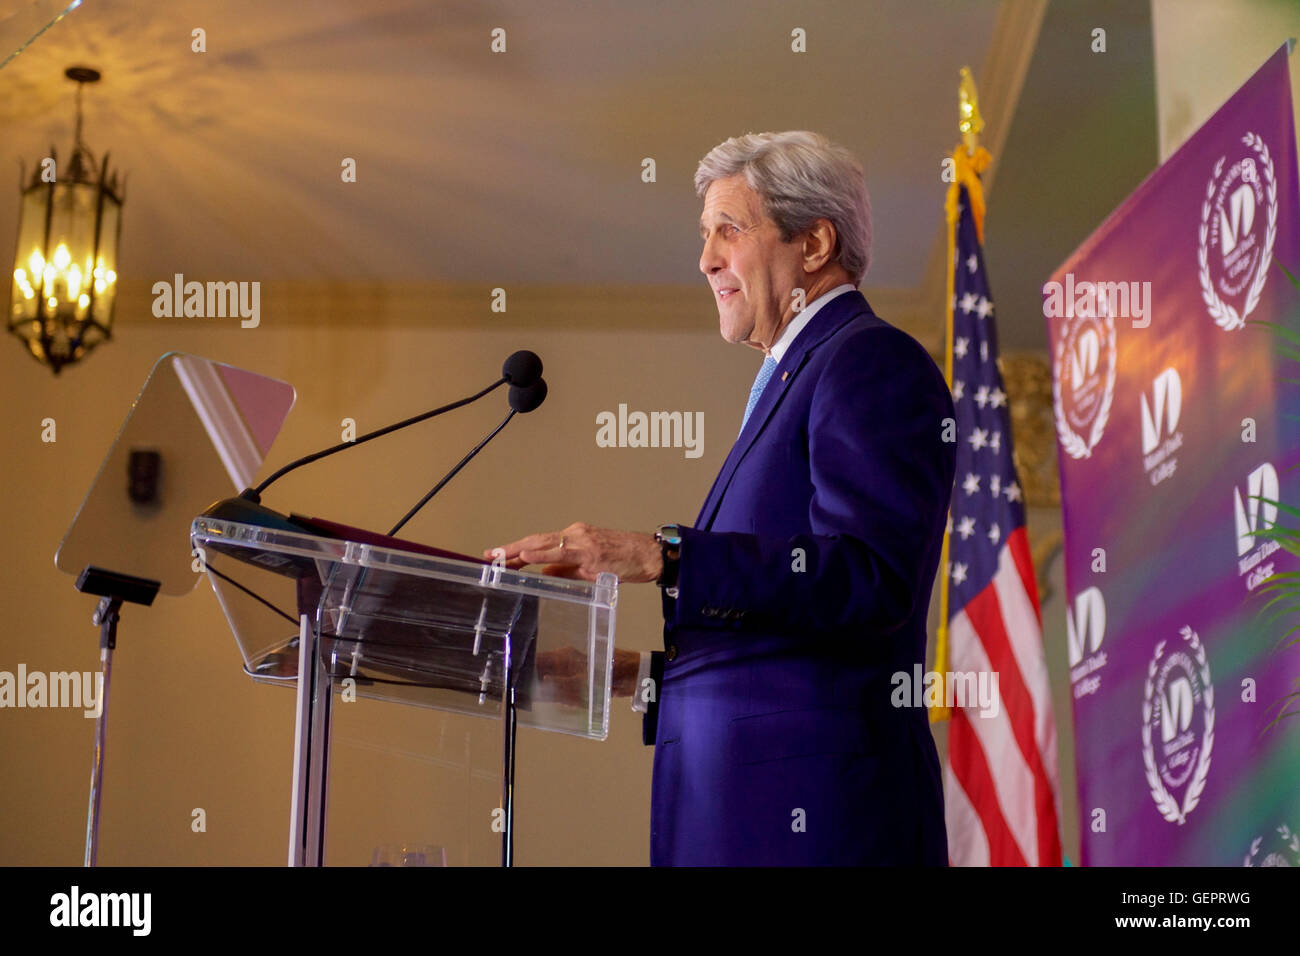 Secretary Kerry Addresses Miami Dade College Honors Graduates During a Day Trip to the City - Stock Image